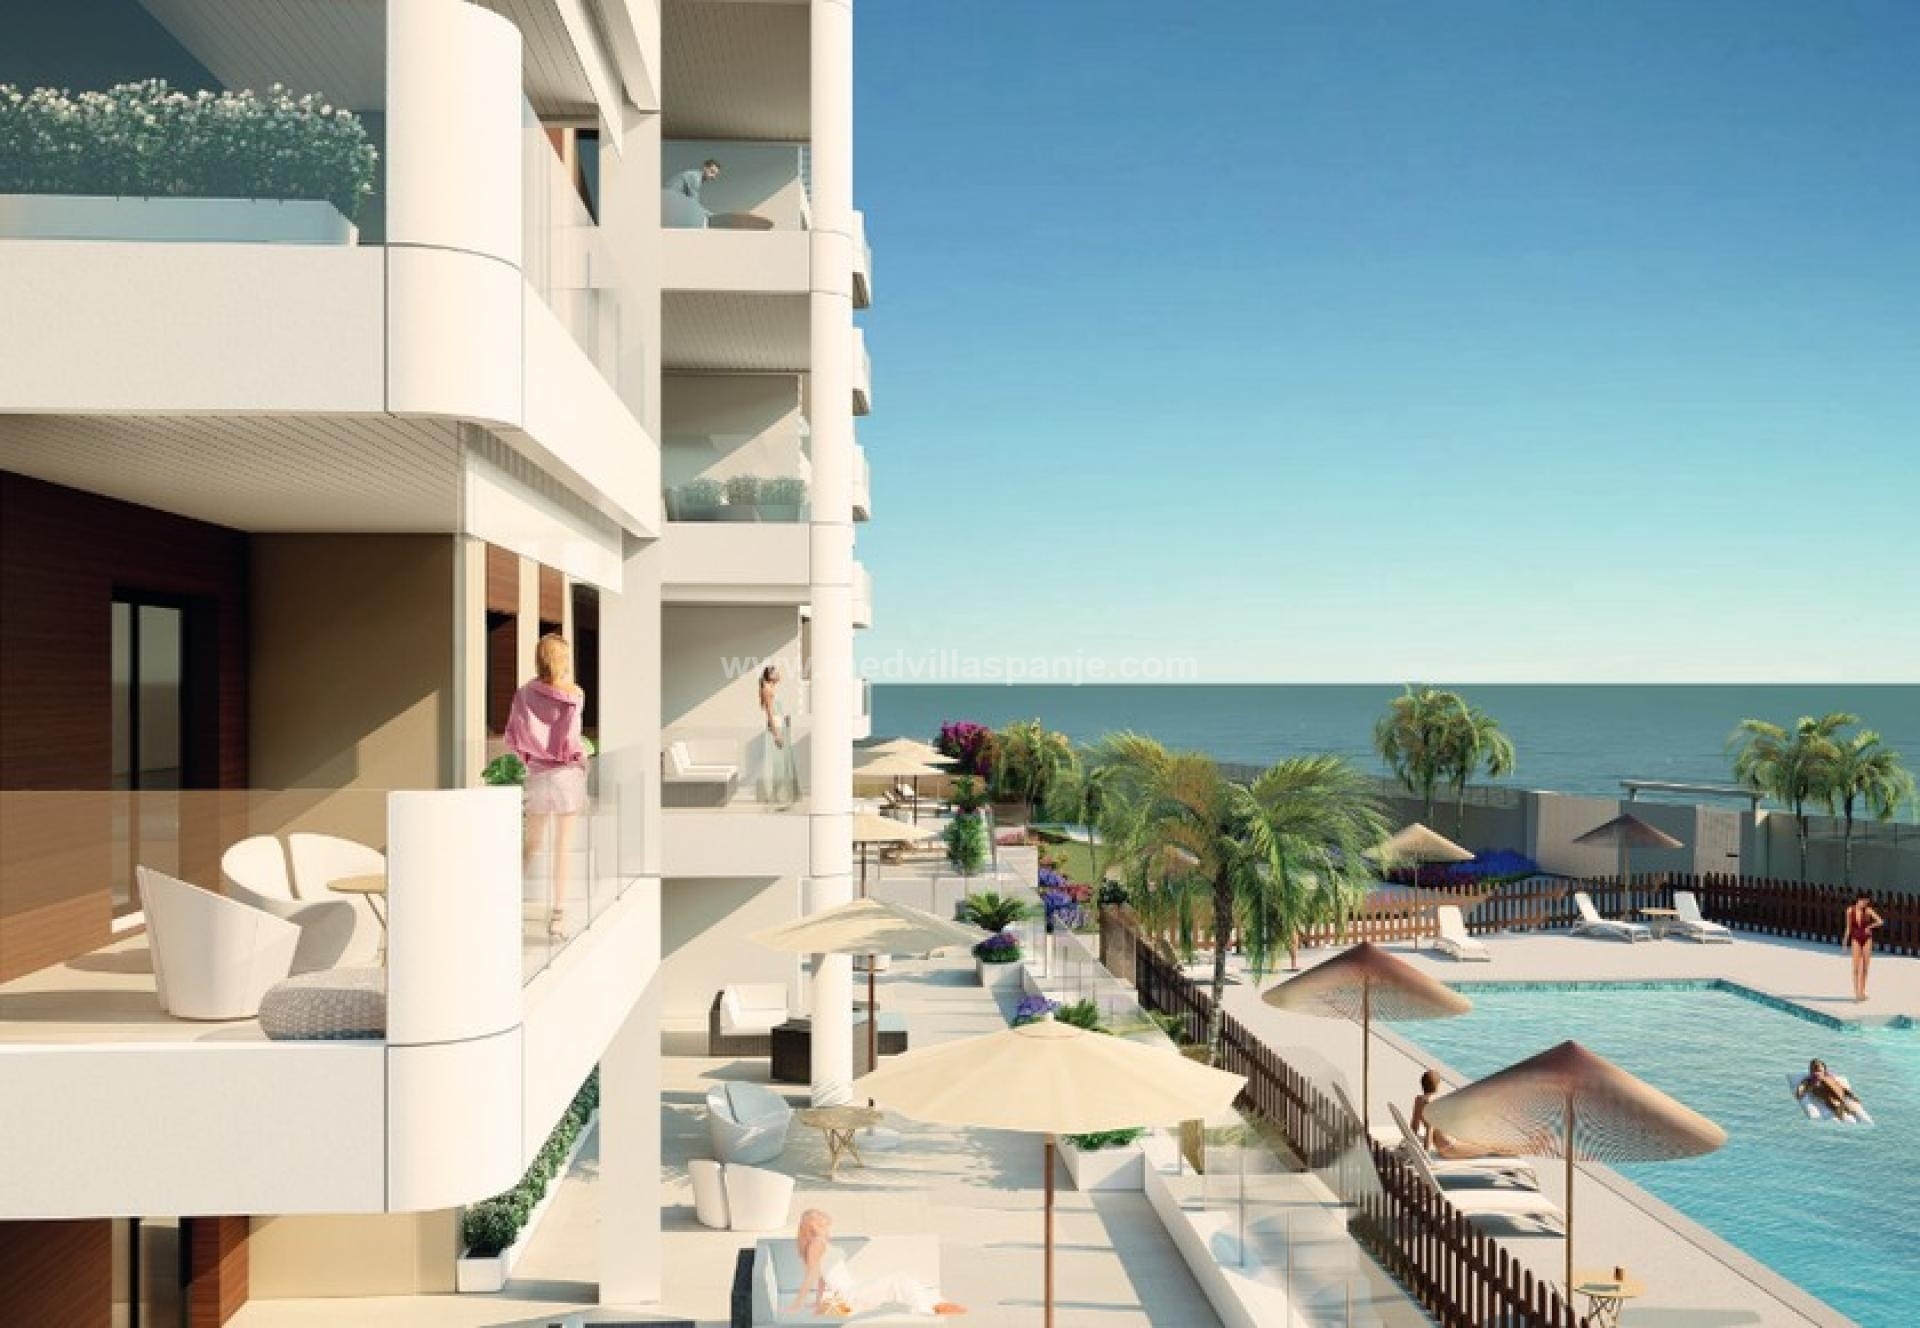 Mil Palmeras apartments first line sea, Costa Blanca South in Medvilla Spanje